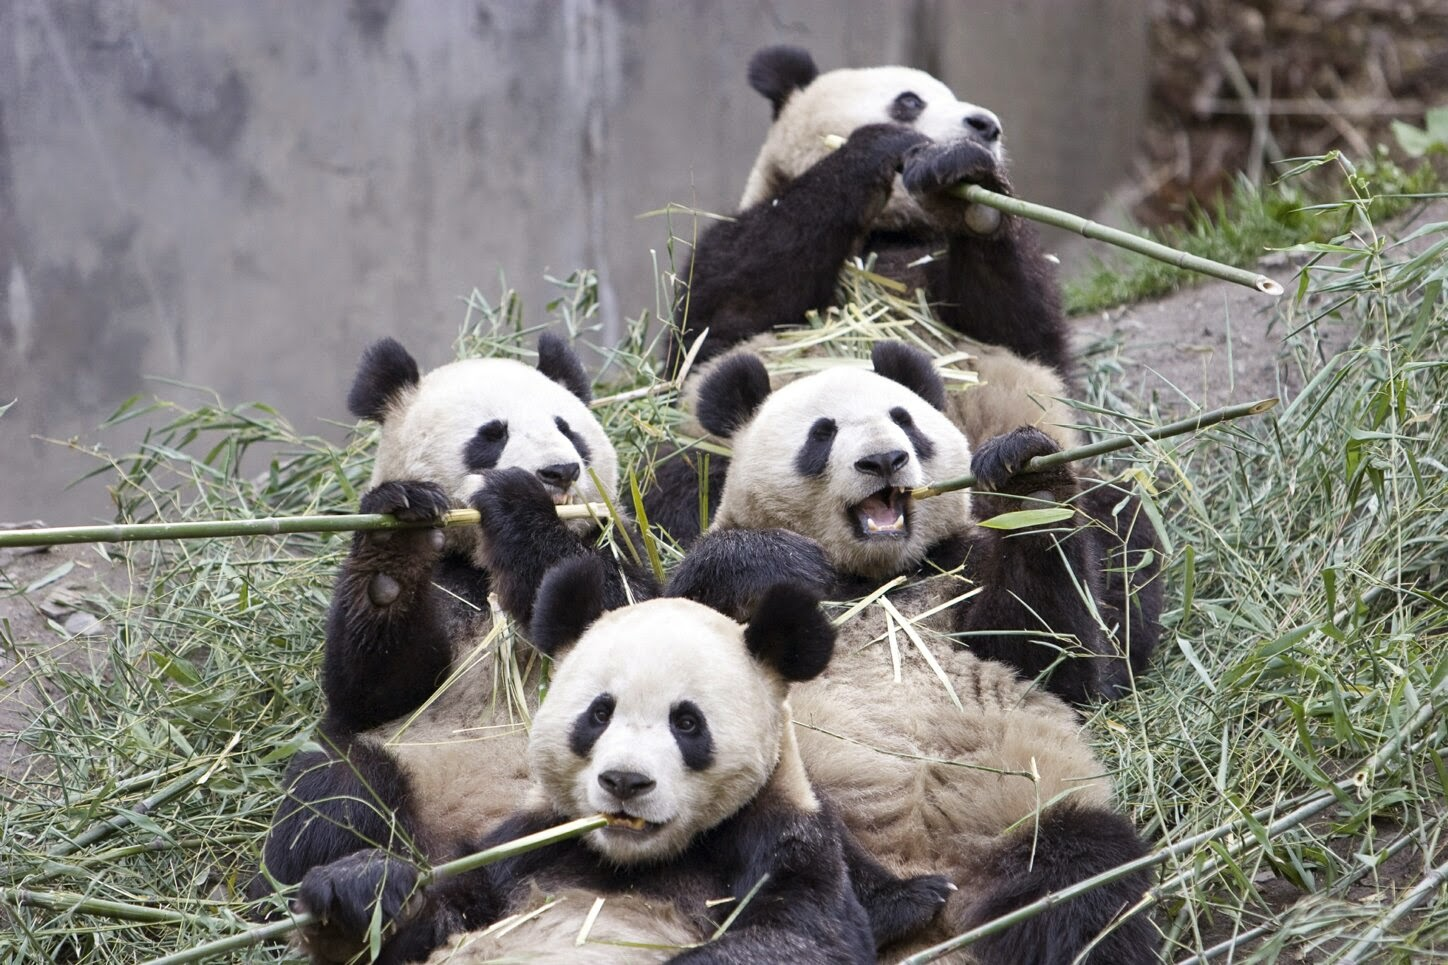 Giant Panda Bear Facts in China - Weird Interesting Facts